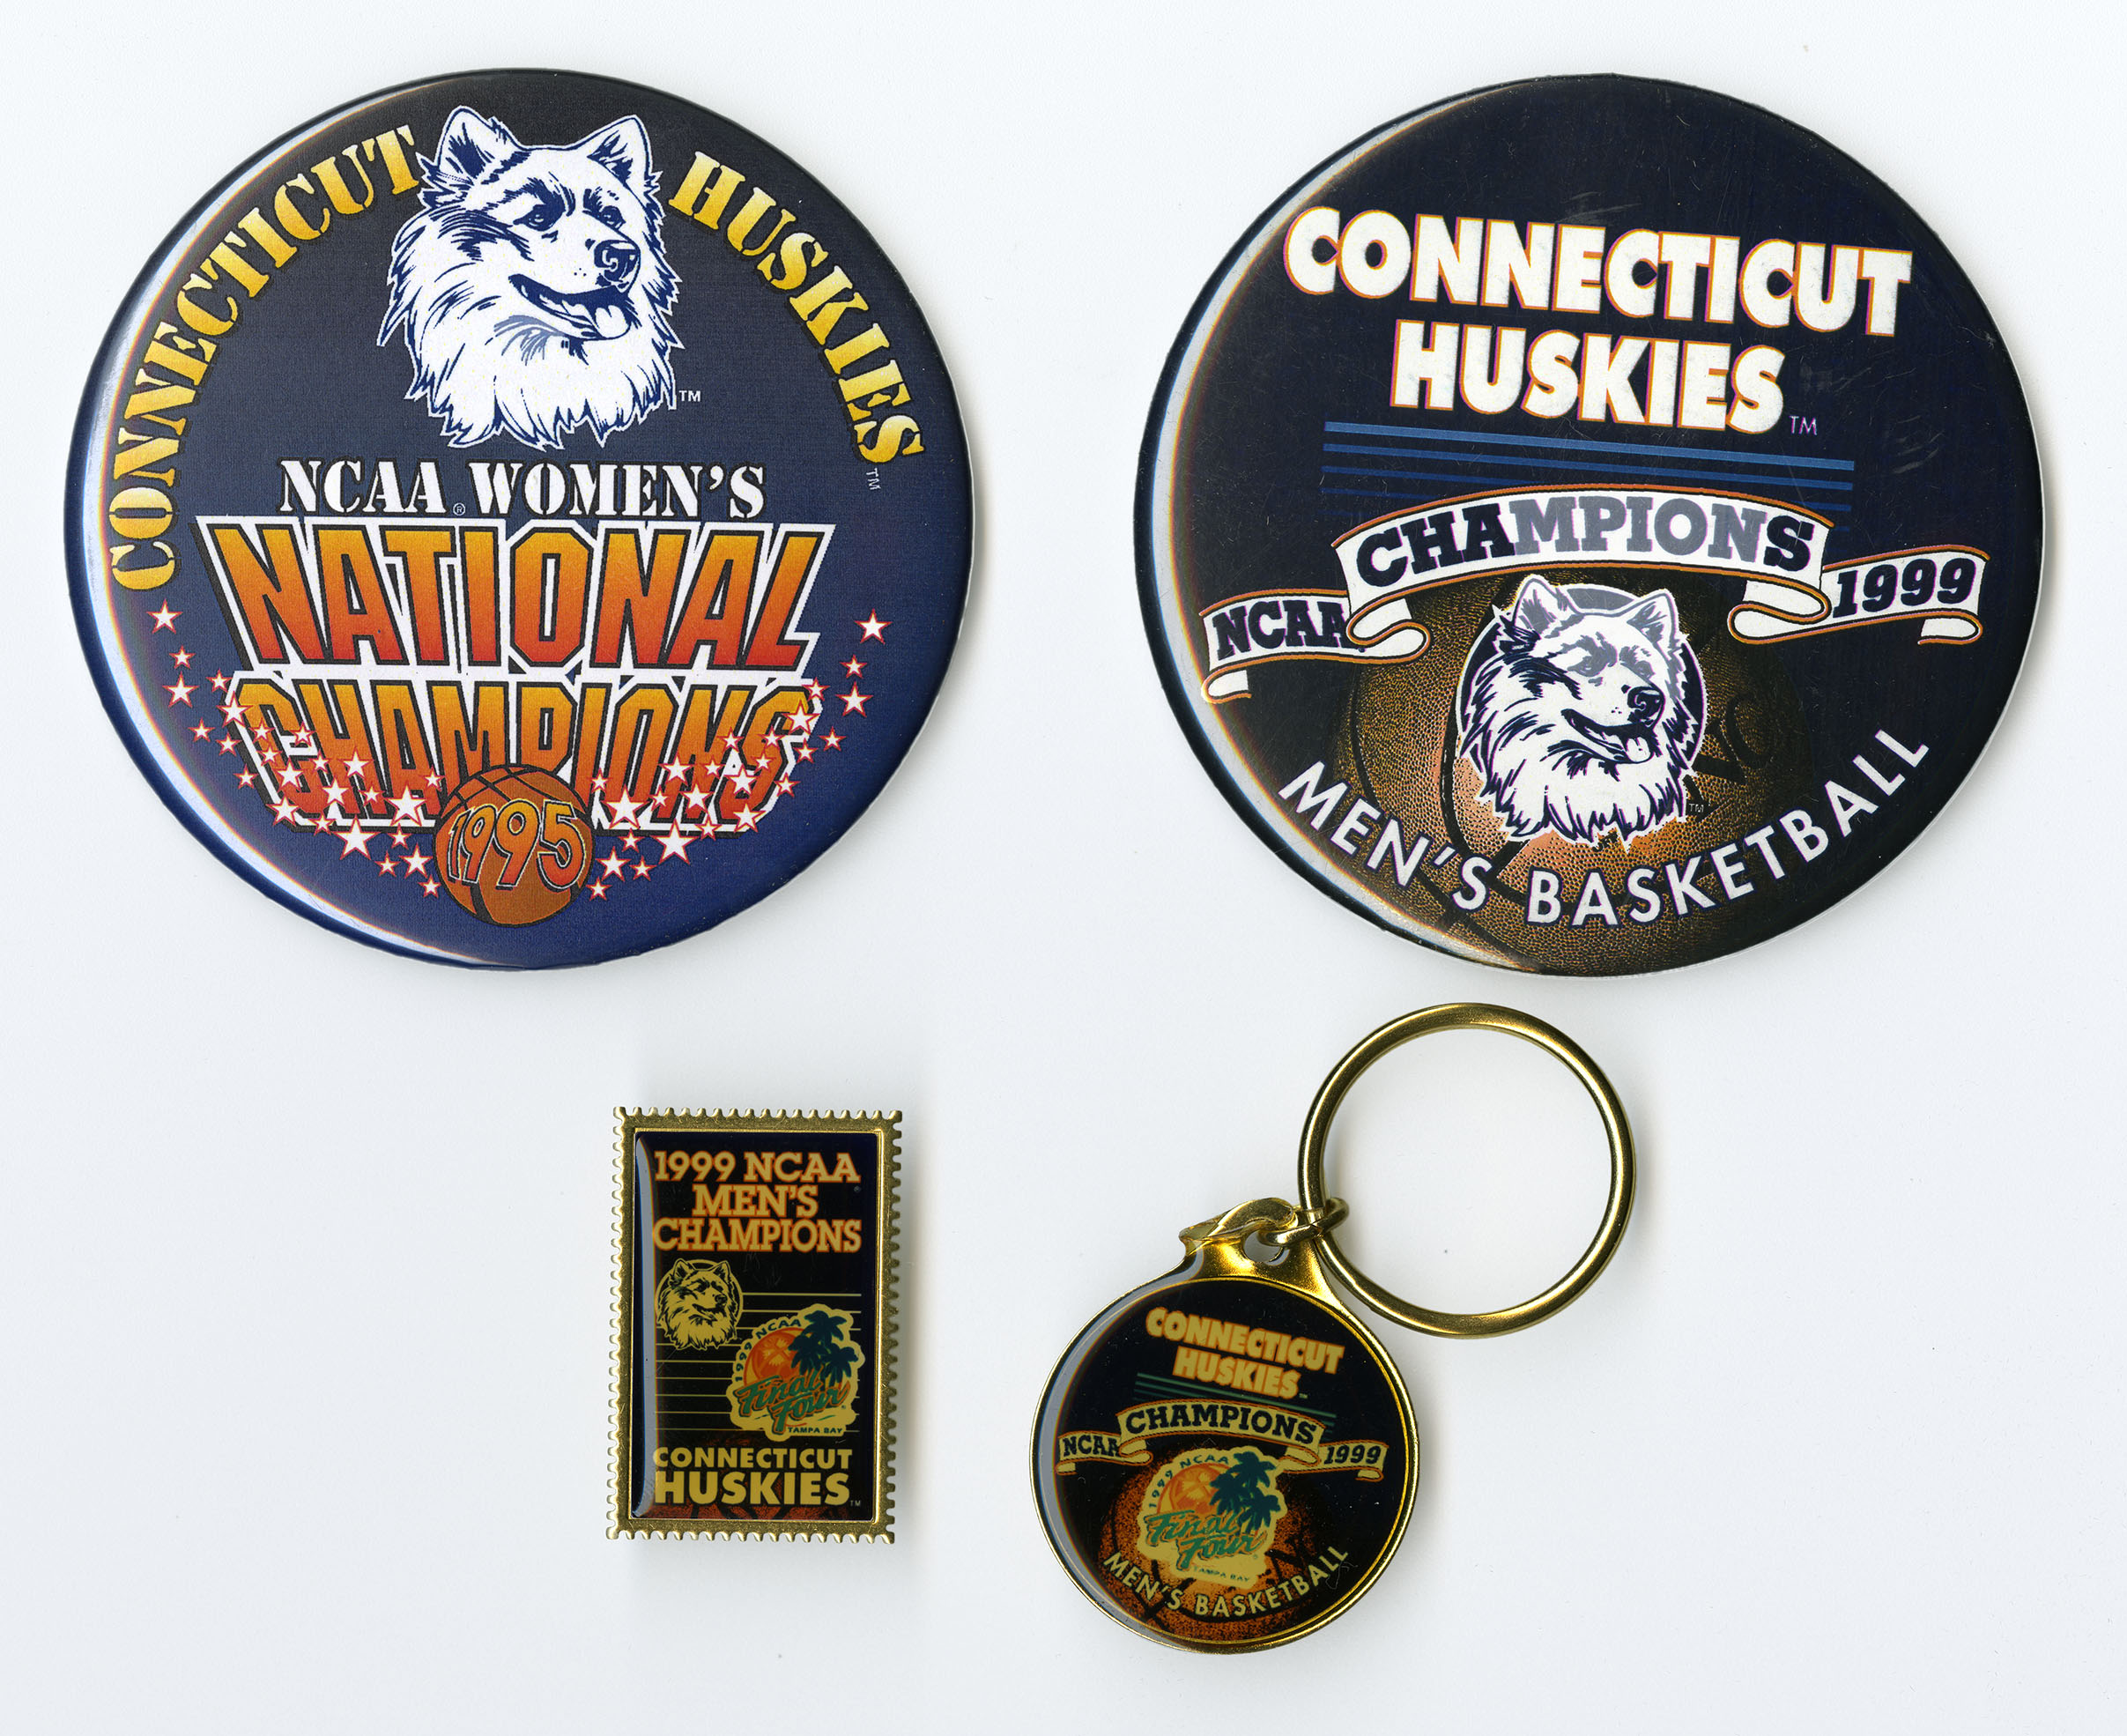 1999 Men's Basketball Championship pins